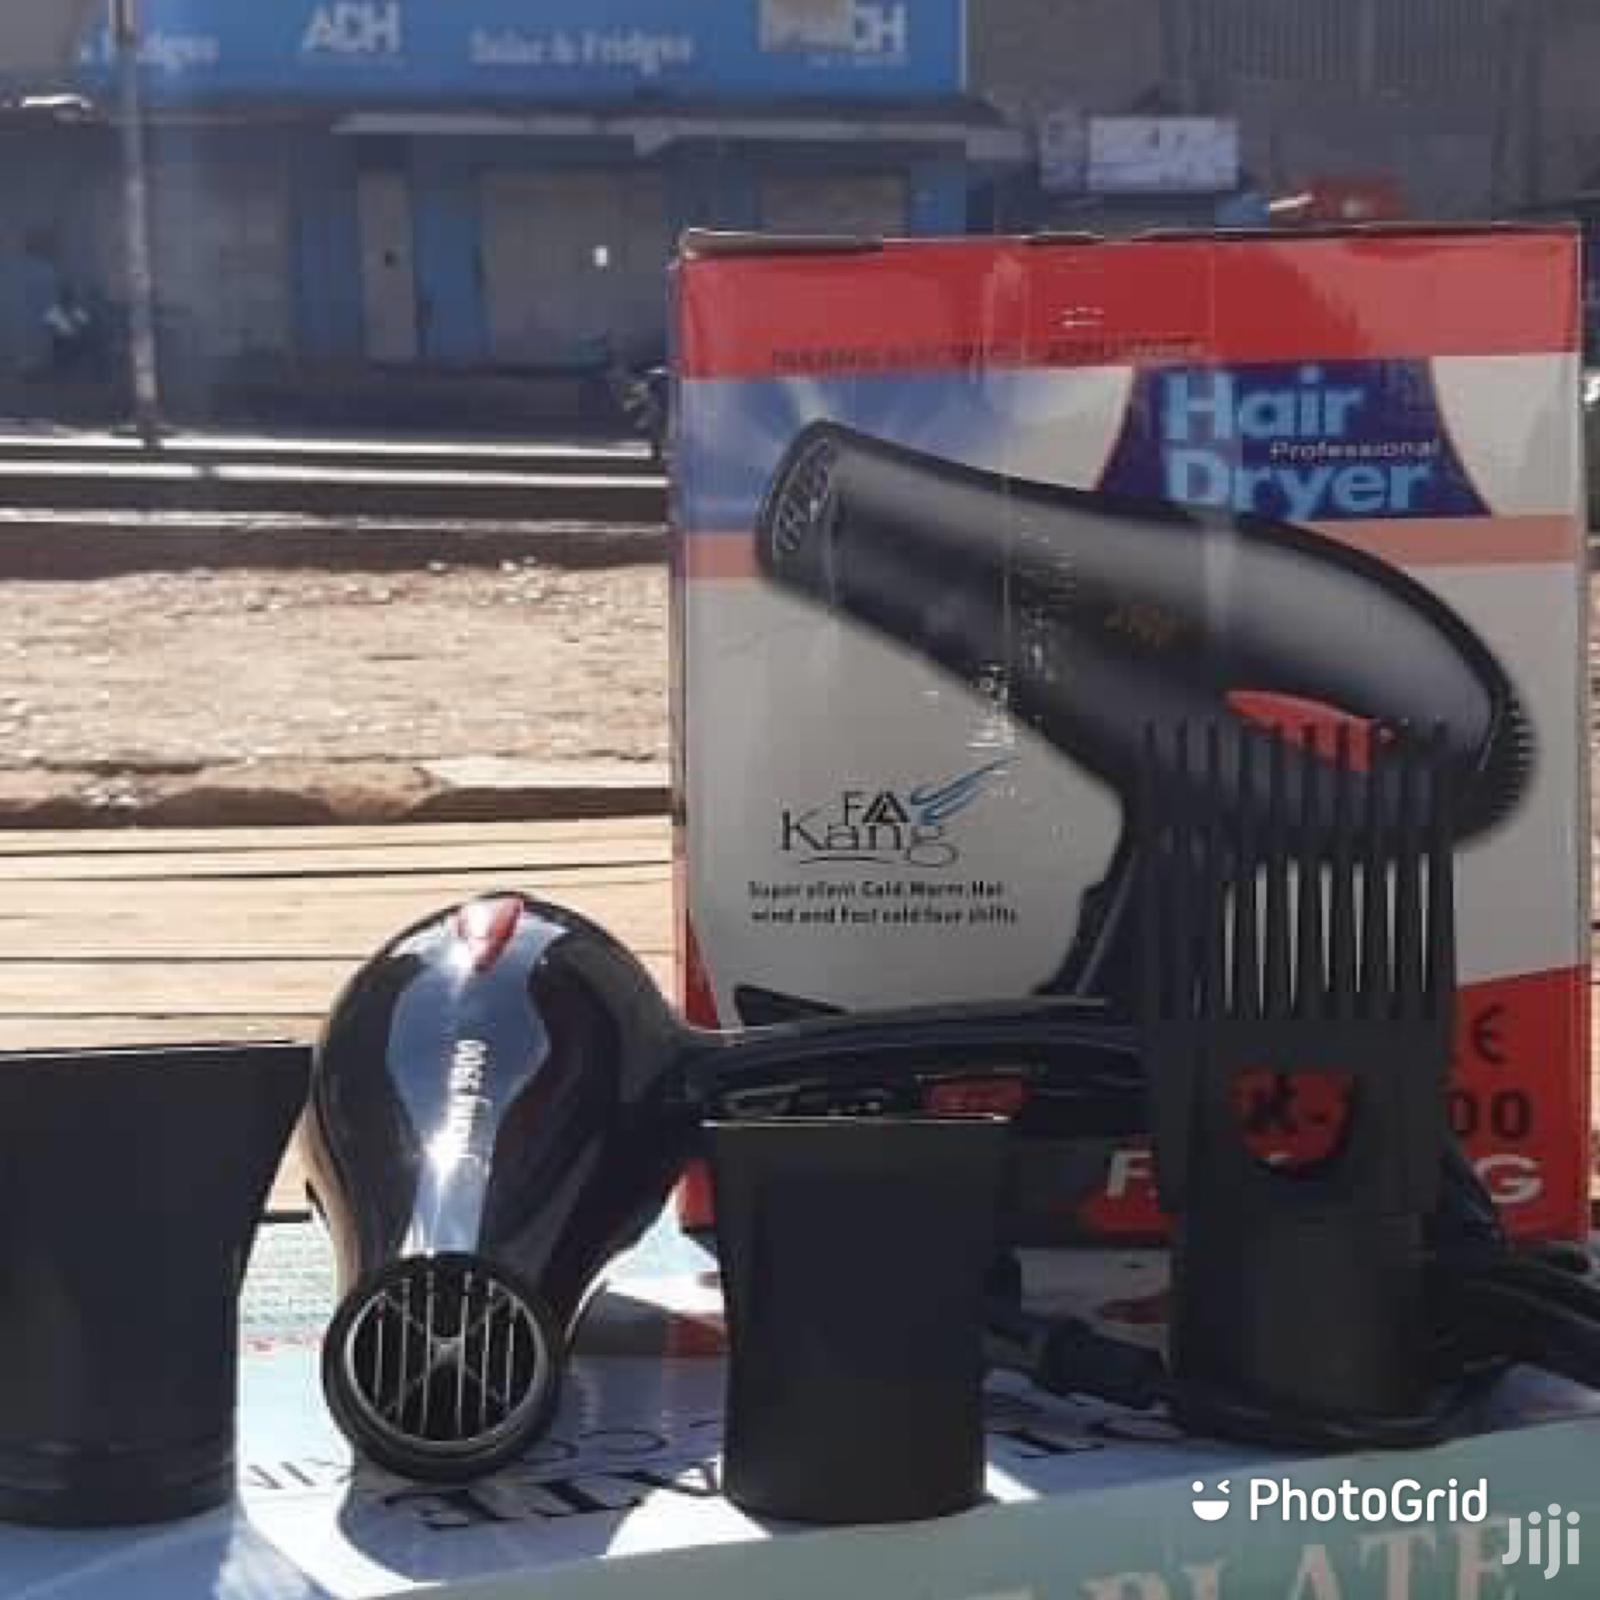 Hair Hand Dryer | Tools & Accessories for sale in Kampala, Central Region, Uganda